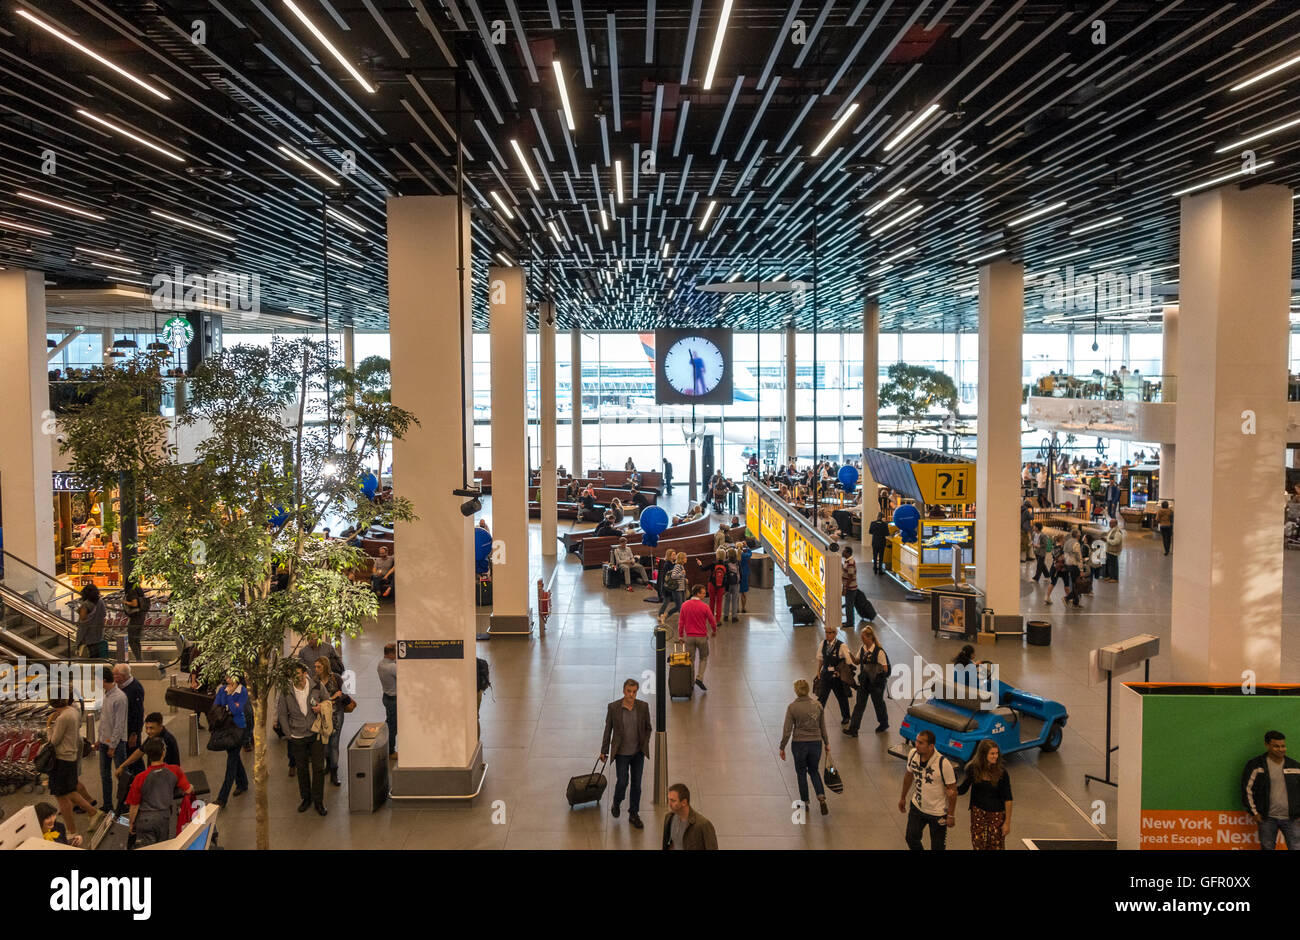 Departure Lounge 2 at Schiphol Amsterdam Airport - Stock Image